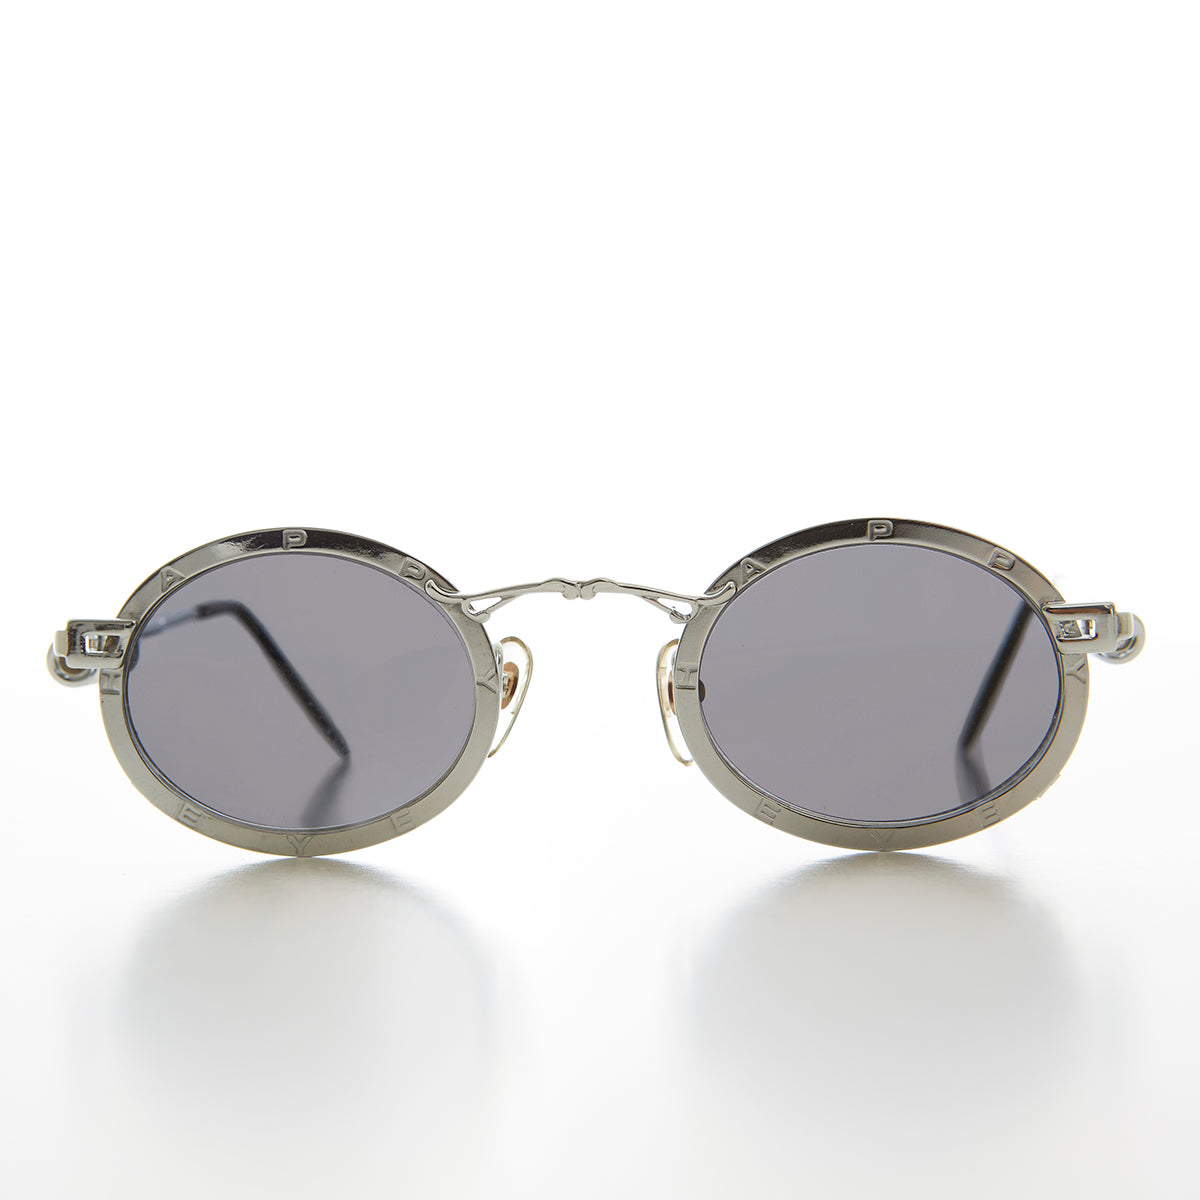 Oval Industrial Spectacles with Spring Coil Temple